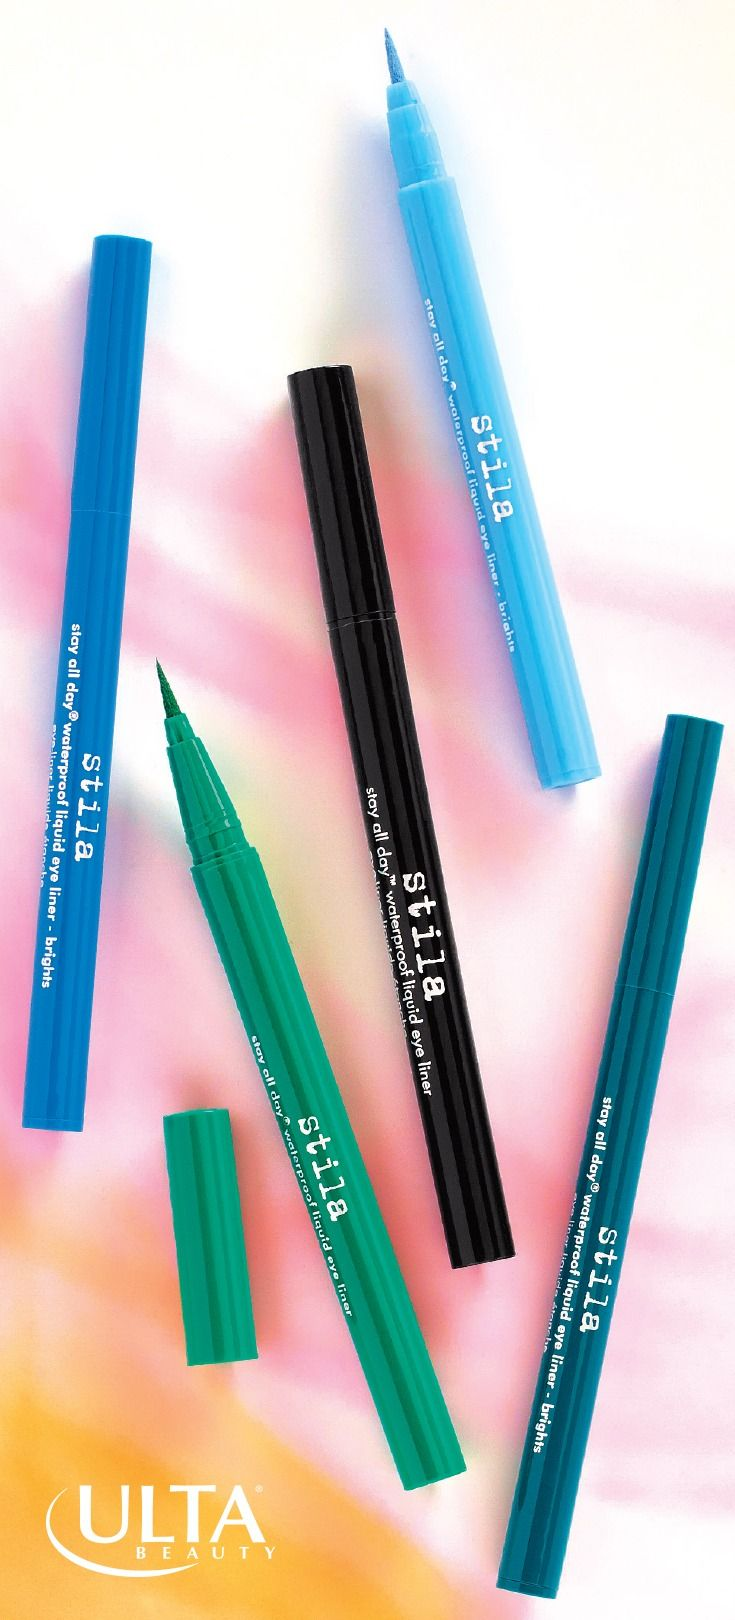 They're named Stay All Day for a reason. Stila waterproof, smudgeproof liquid liner in gorgeous colors with easy-to-use marker tips.